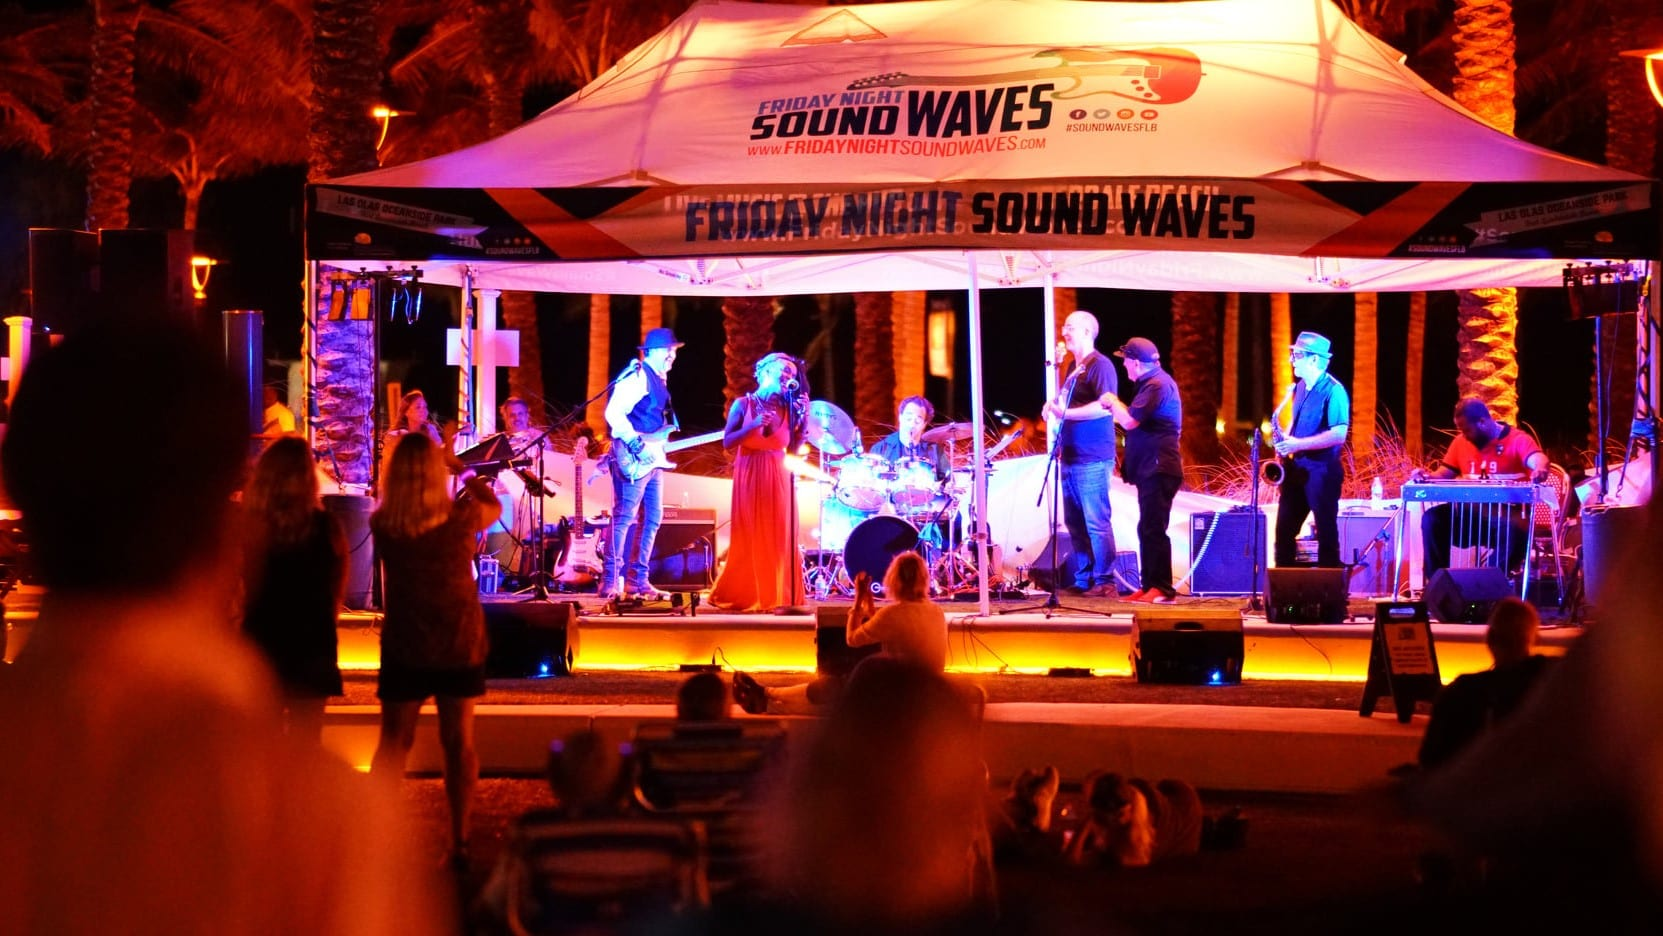 friday night sound waves free concert